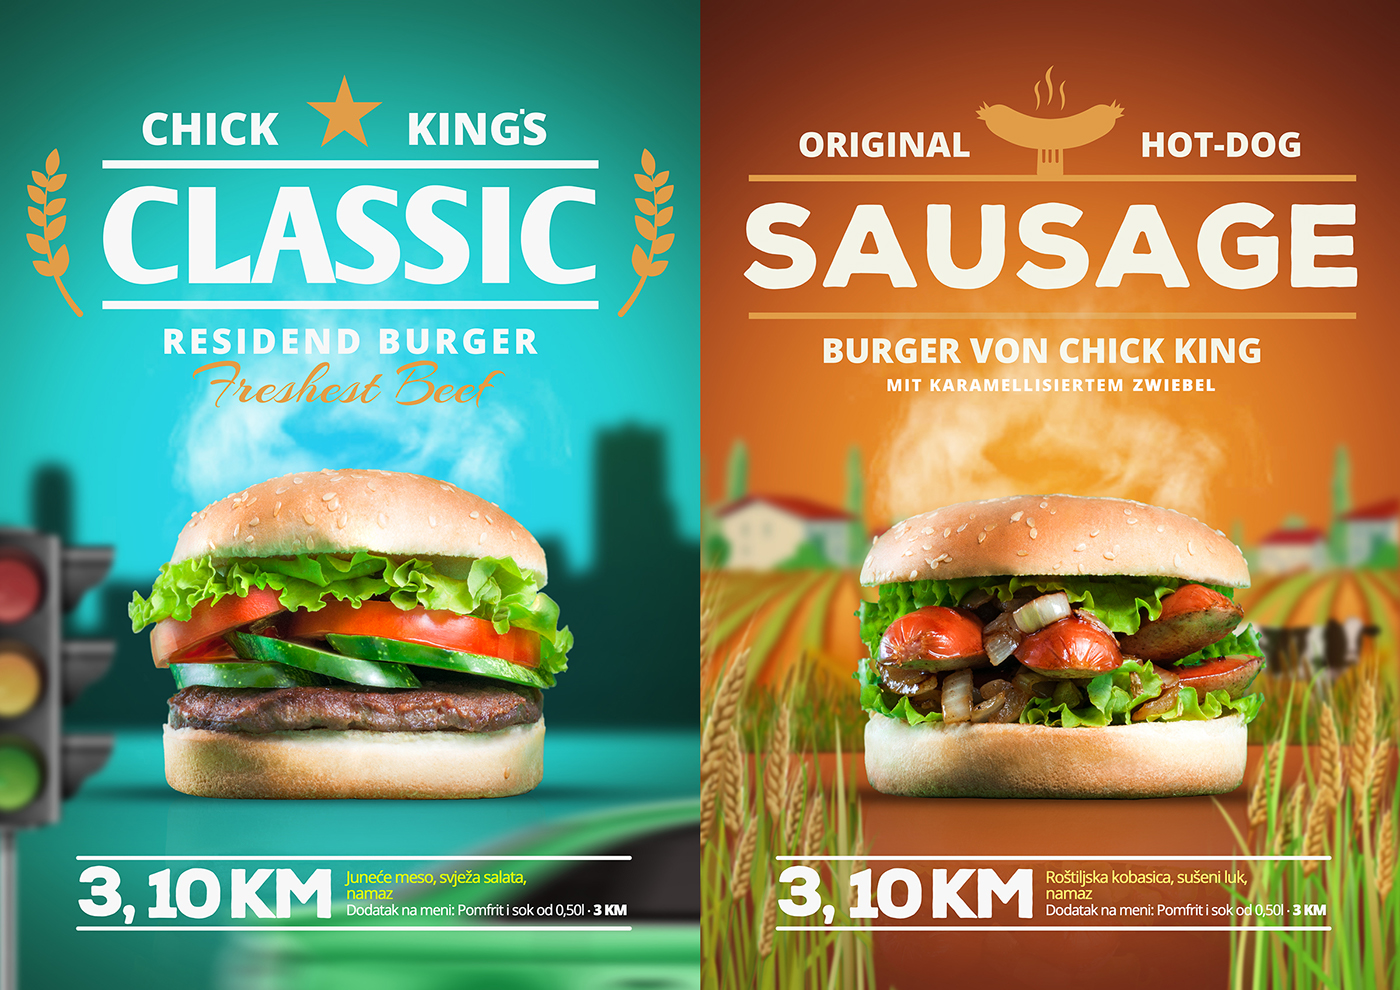 burger campaign hamburger poster chilly chicken meat BUNN Chick king Cheese Bosnia fast-food Junk-food grill